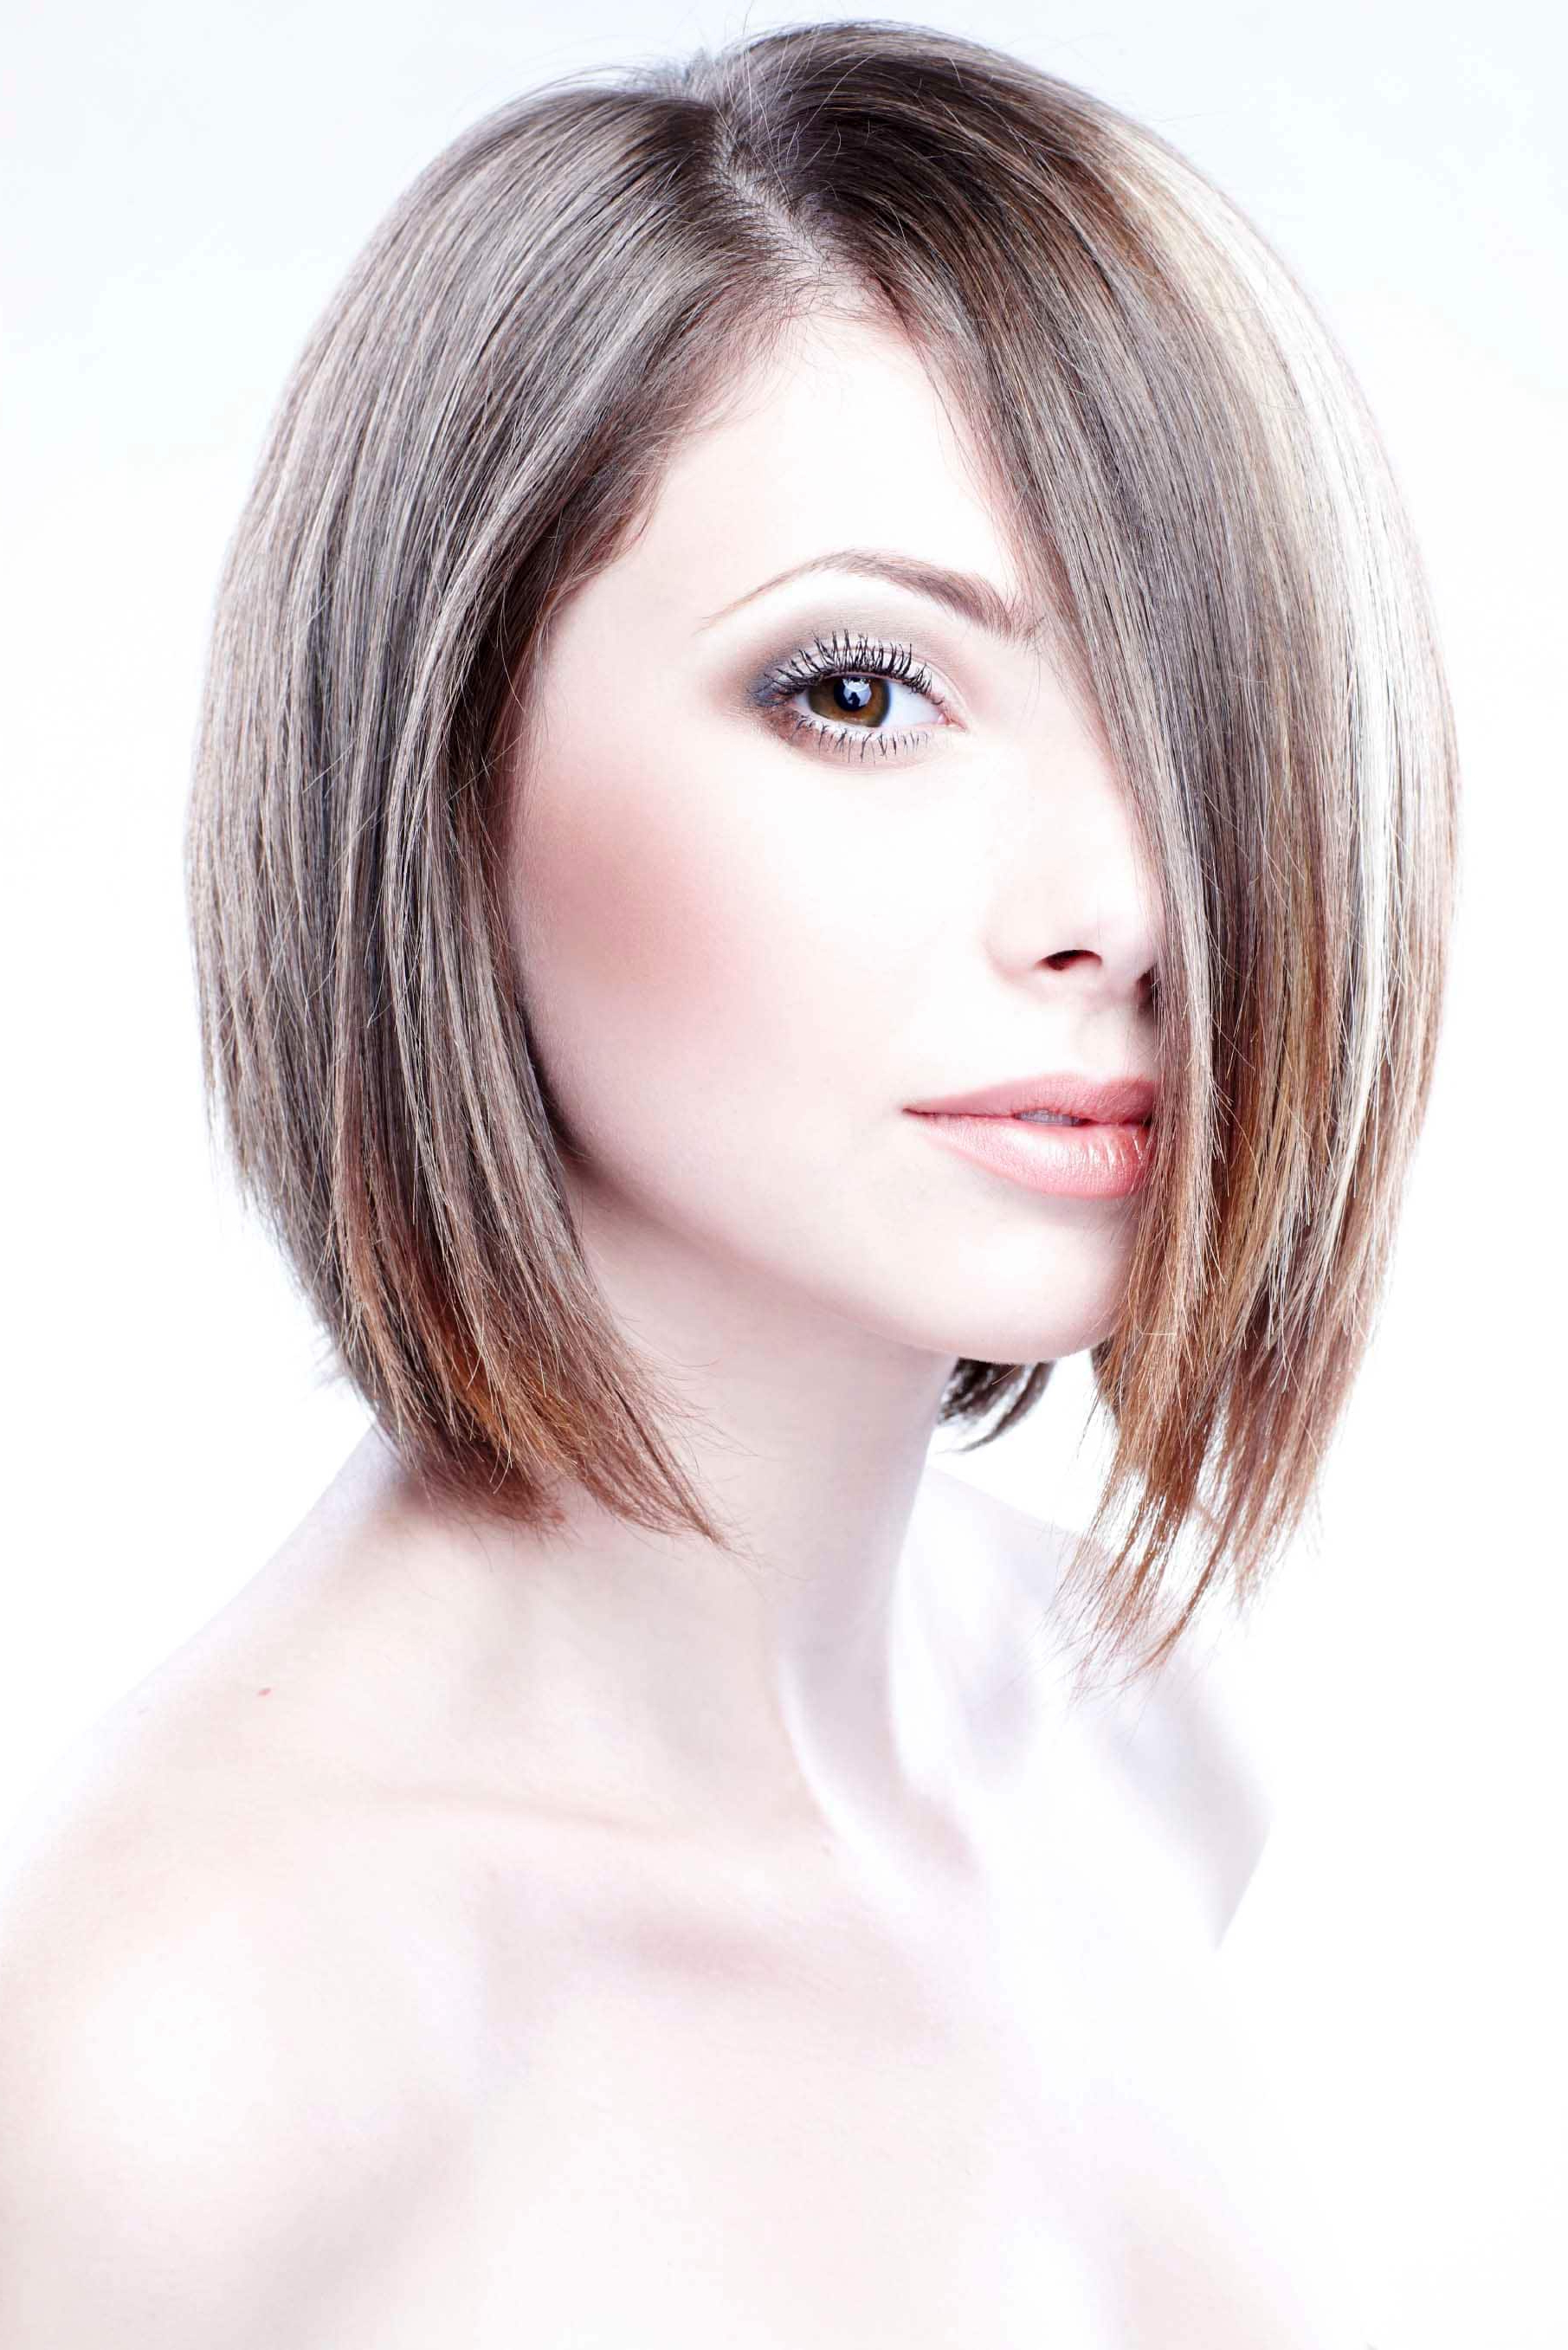 Bob Haircuts Guide: Inspirational Hairstyles, Tips And Trends Within Blonde Bob Hairstyles With Tapered Side (View 17 of 20)